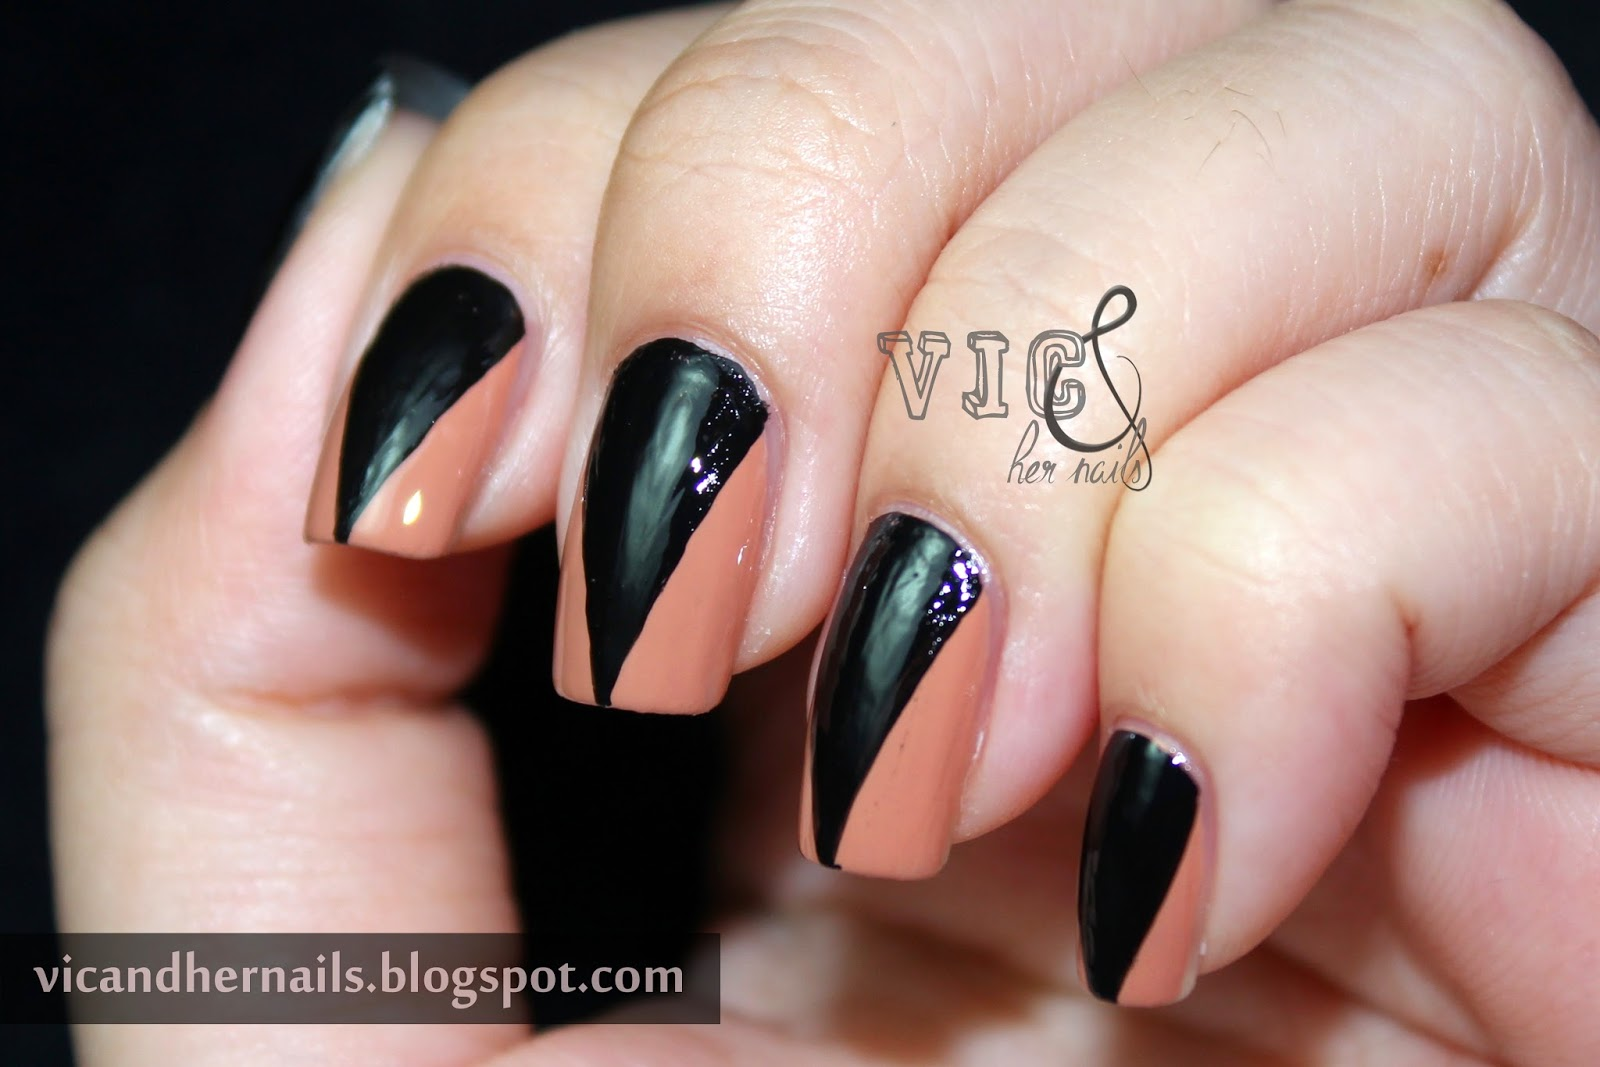 Vic and Her Nails: Halloween Nail Art Challenge - Black Cats or Bats